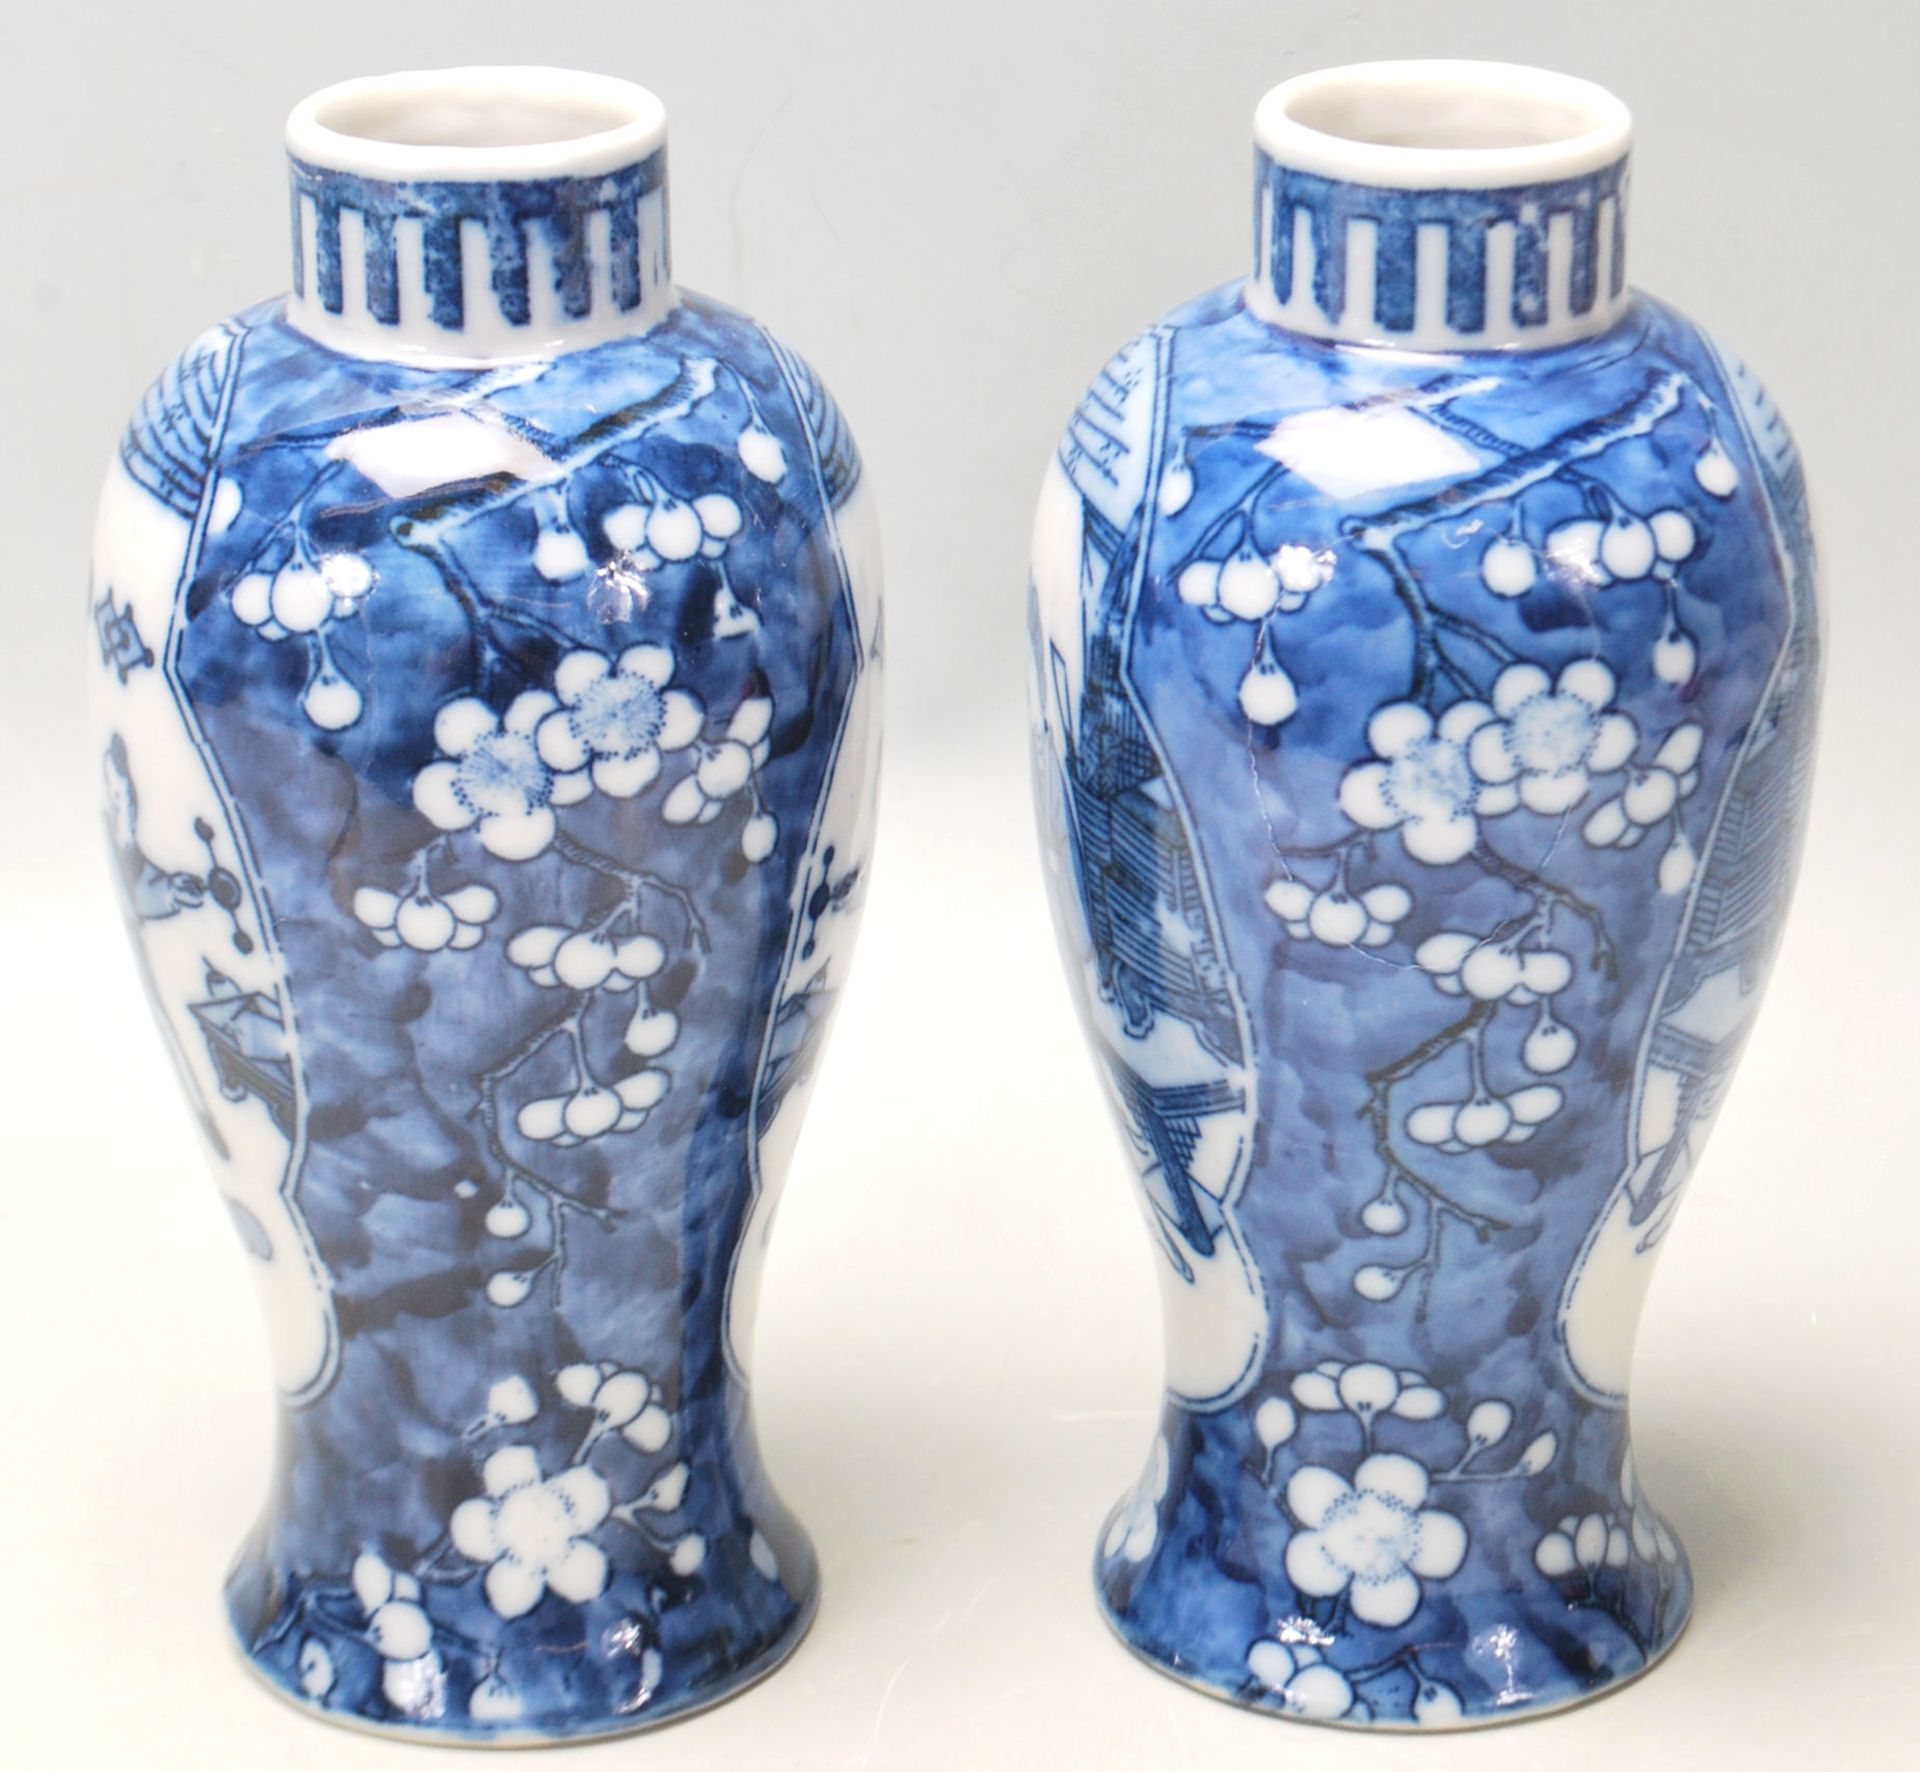 Los 177 - A true pair of 20th Century Chinese Kangxi vases of baluster form with decorated with plum